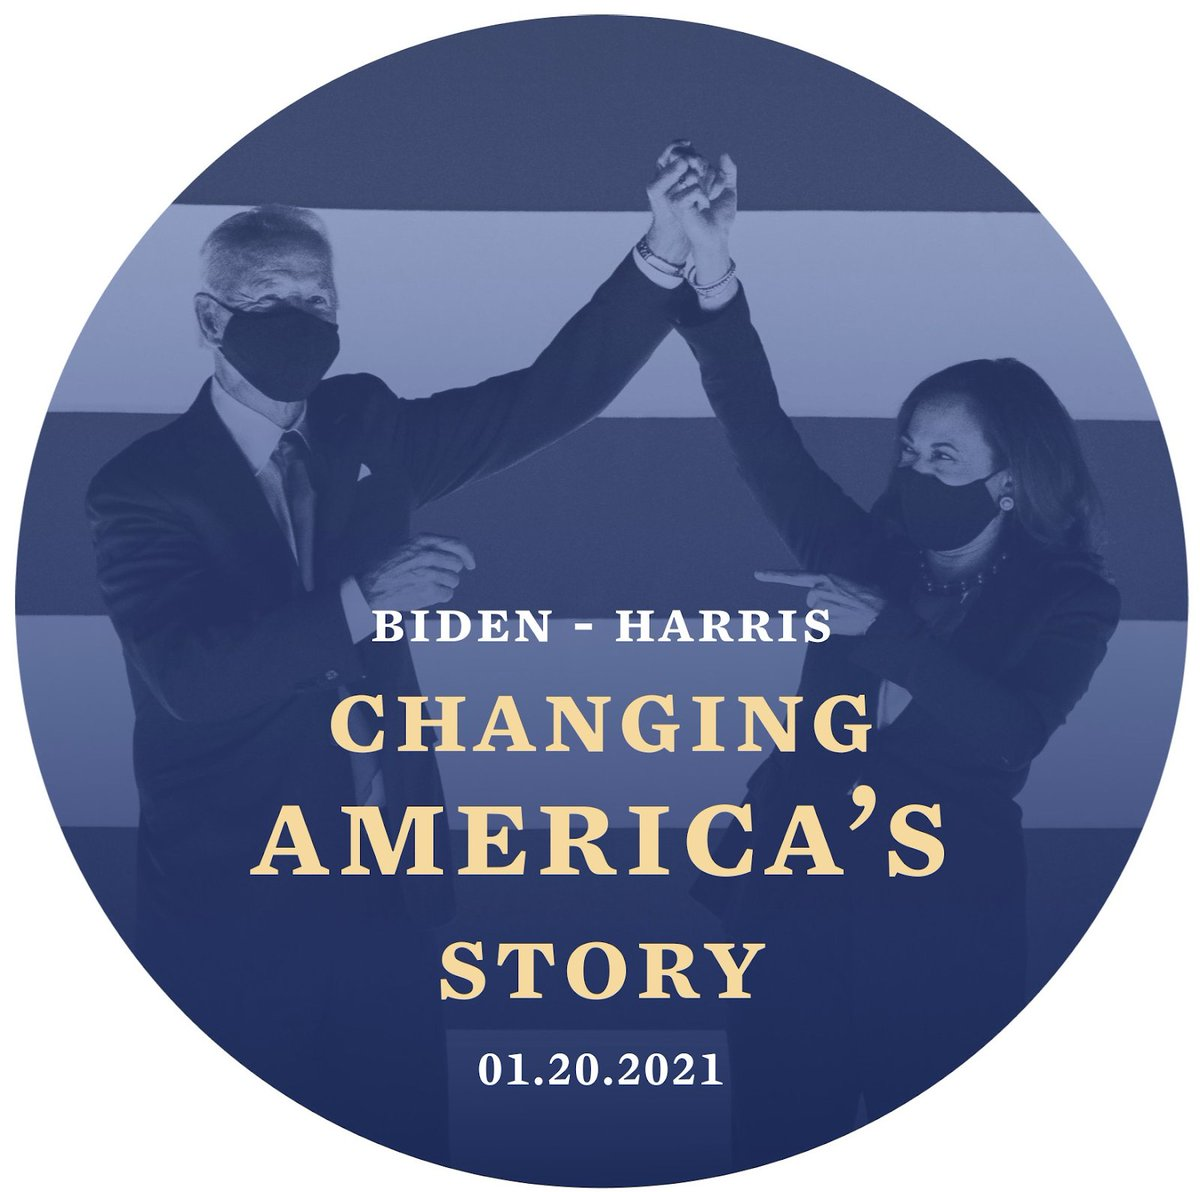 #InaugurationDay  #FirstWomanVicePresident  May God Bless you @JoeBiden & @KamalaHarris and guide you on this next chapter in American History. Thanks for providing the hope this country needs so badly!